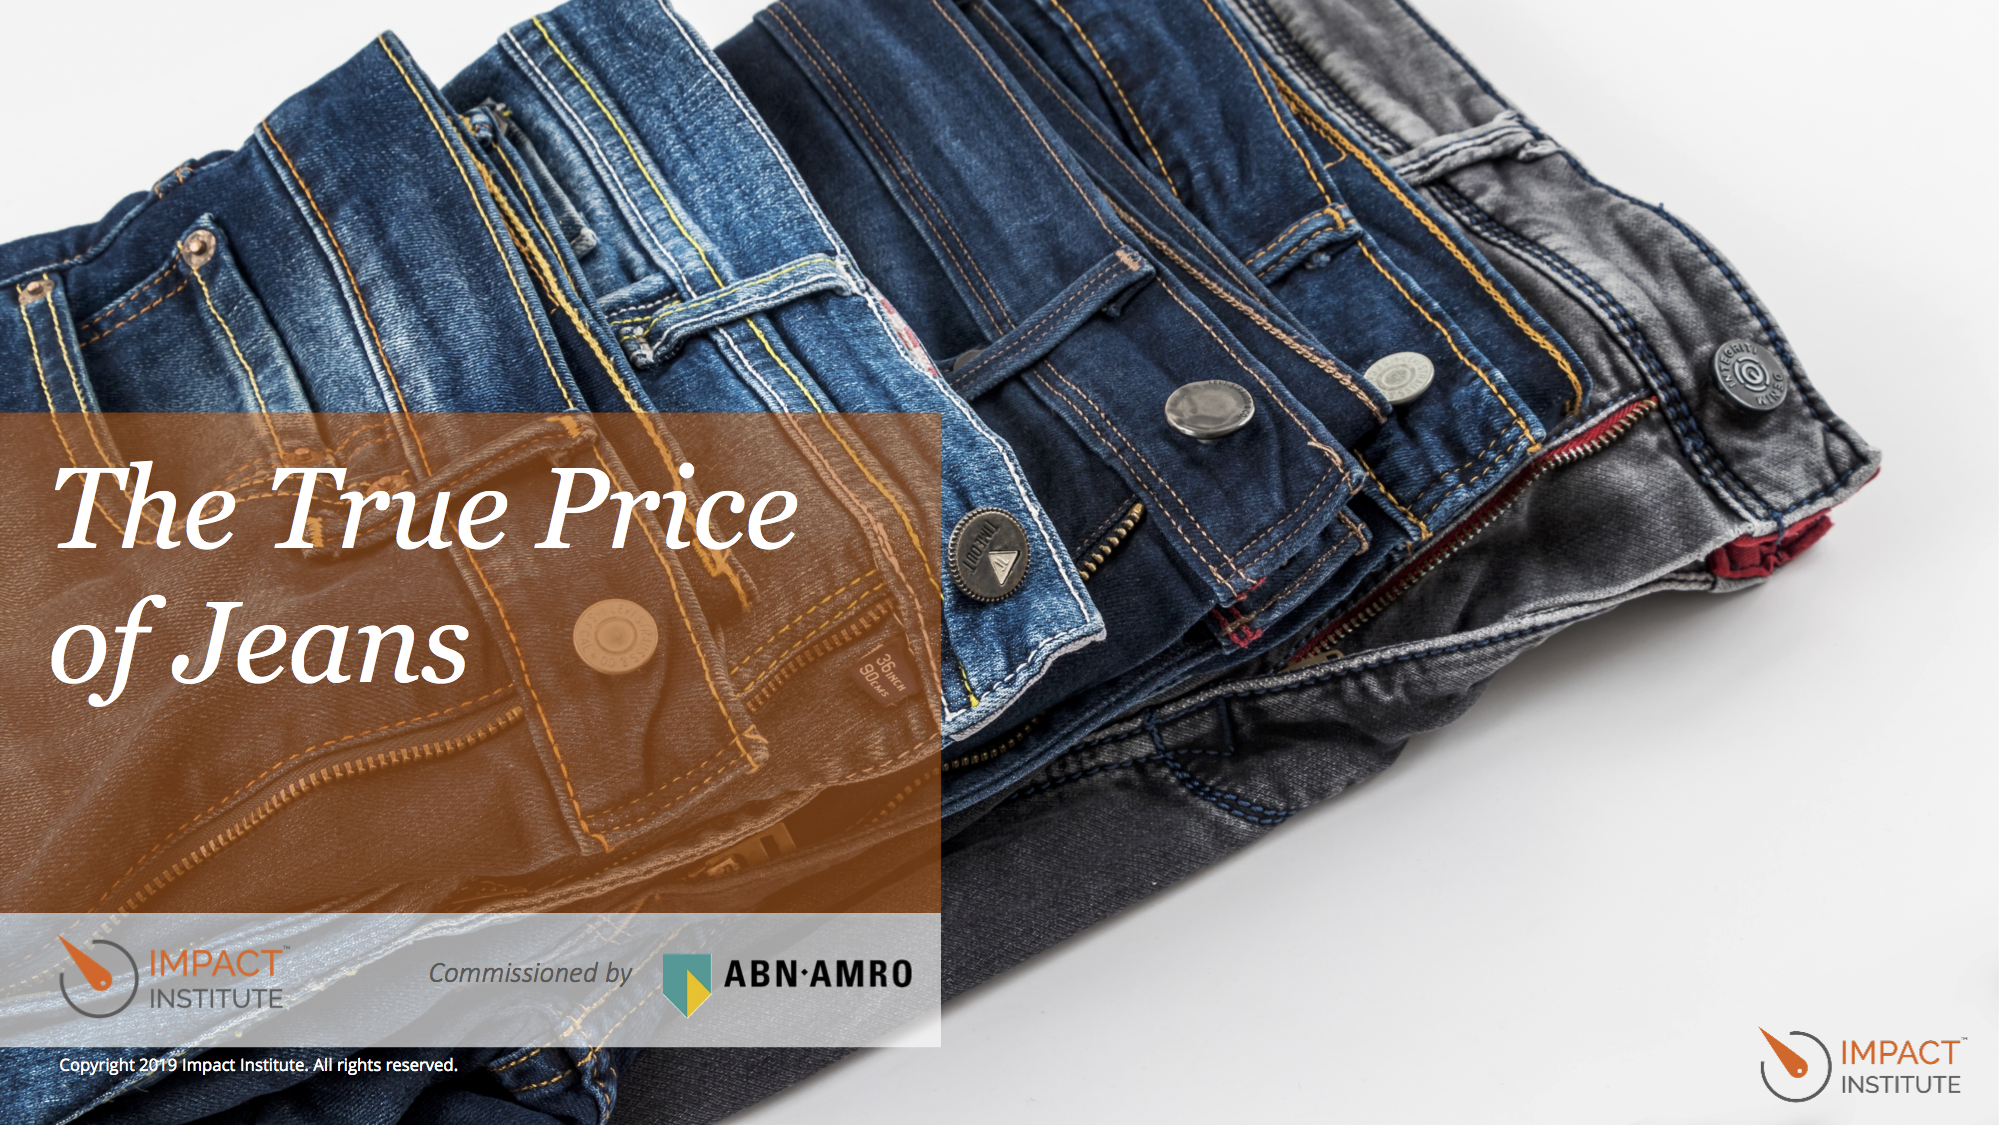 The True Price of Jeans